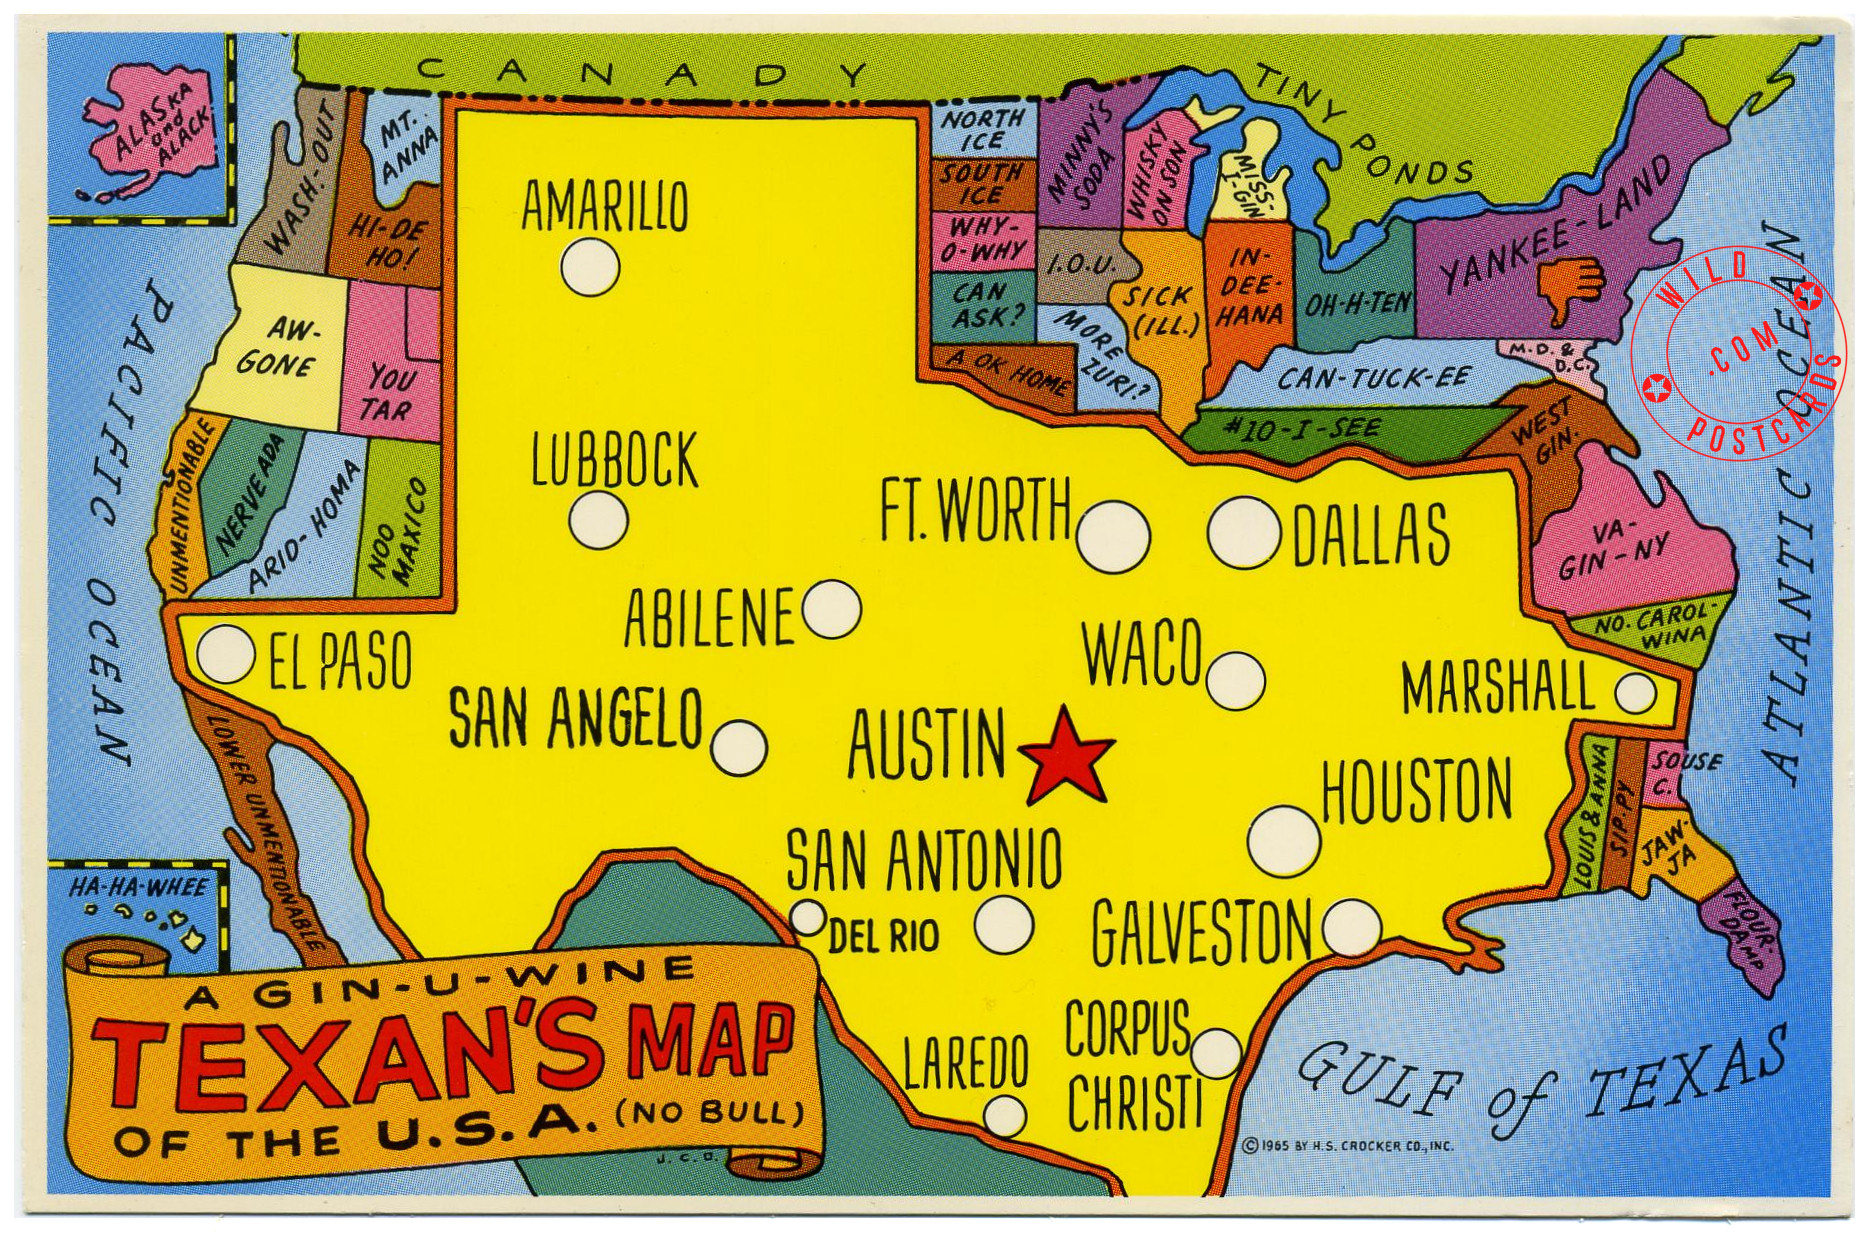 A Texans Map Of The USA Wild Postcards - Us Map Texas